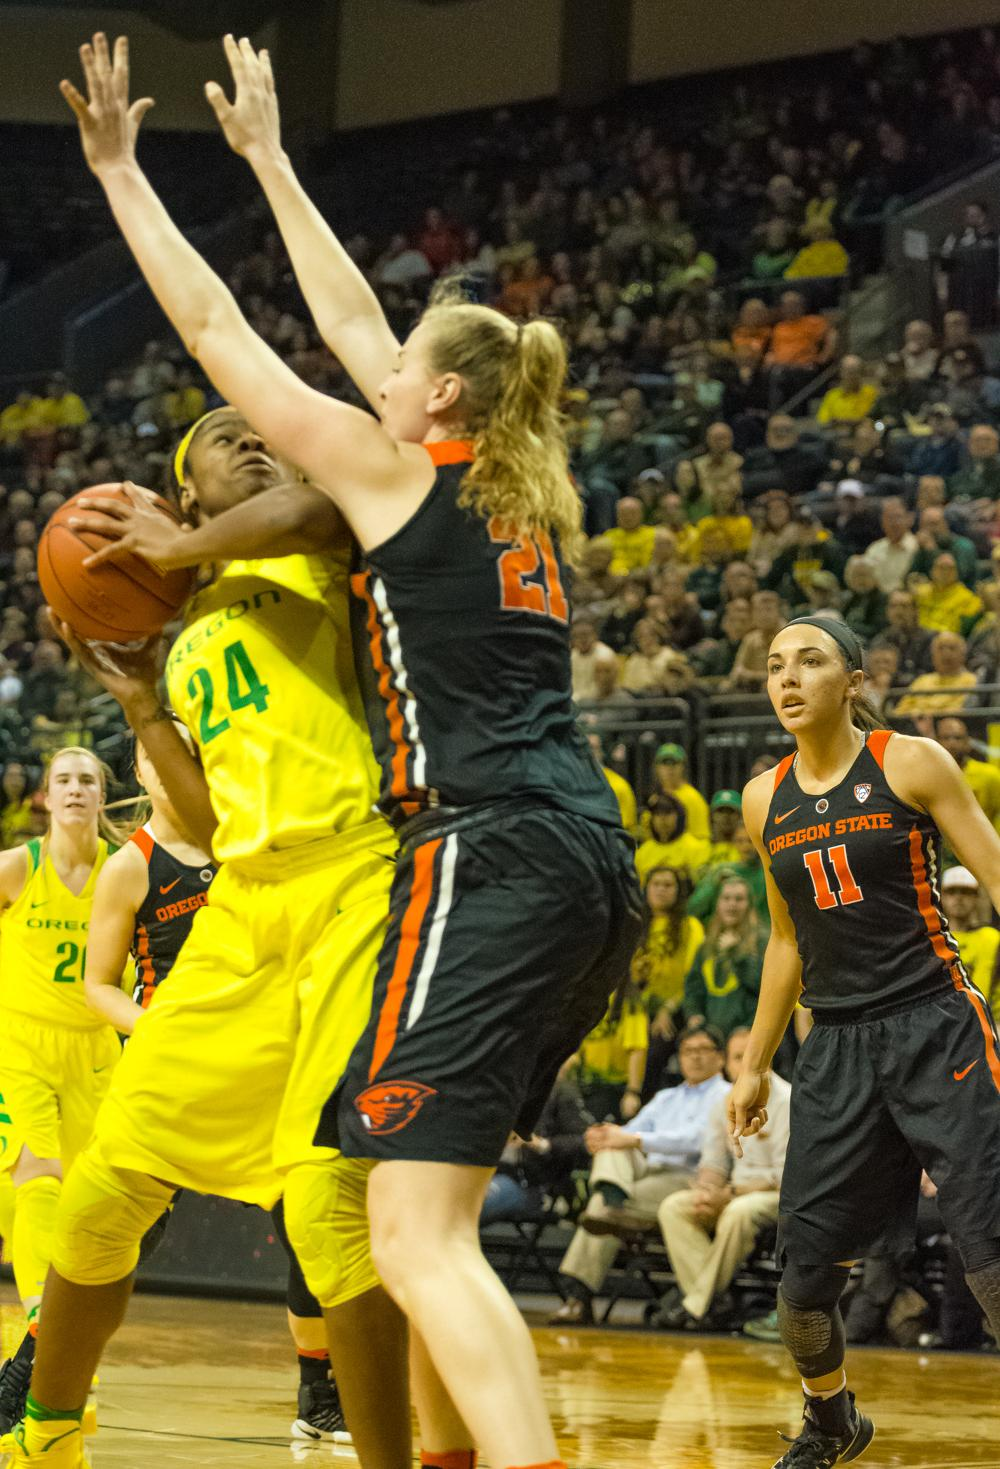 Oregon Ducks Forward Ruthy Hebard (#24) fights through the arms of Oregon State Center Marie Gulich (#21). Oregon Ducks lost 40-43 to Oregon State Beavers in a tightly matched fourth quarter. Photo by Jonathan Booker, Oregon News Lab